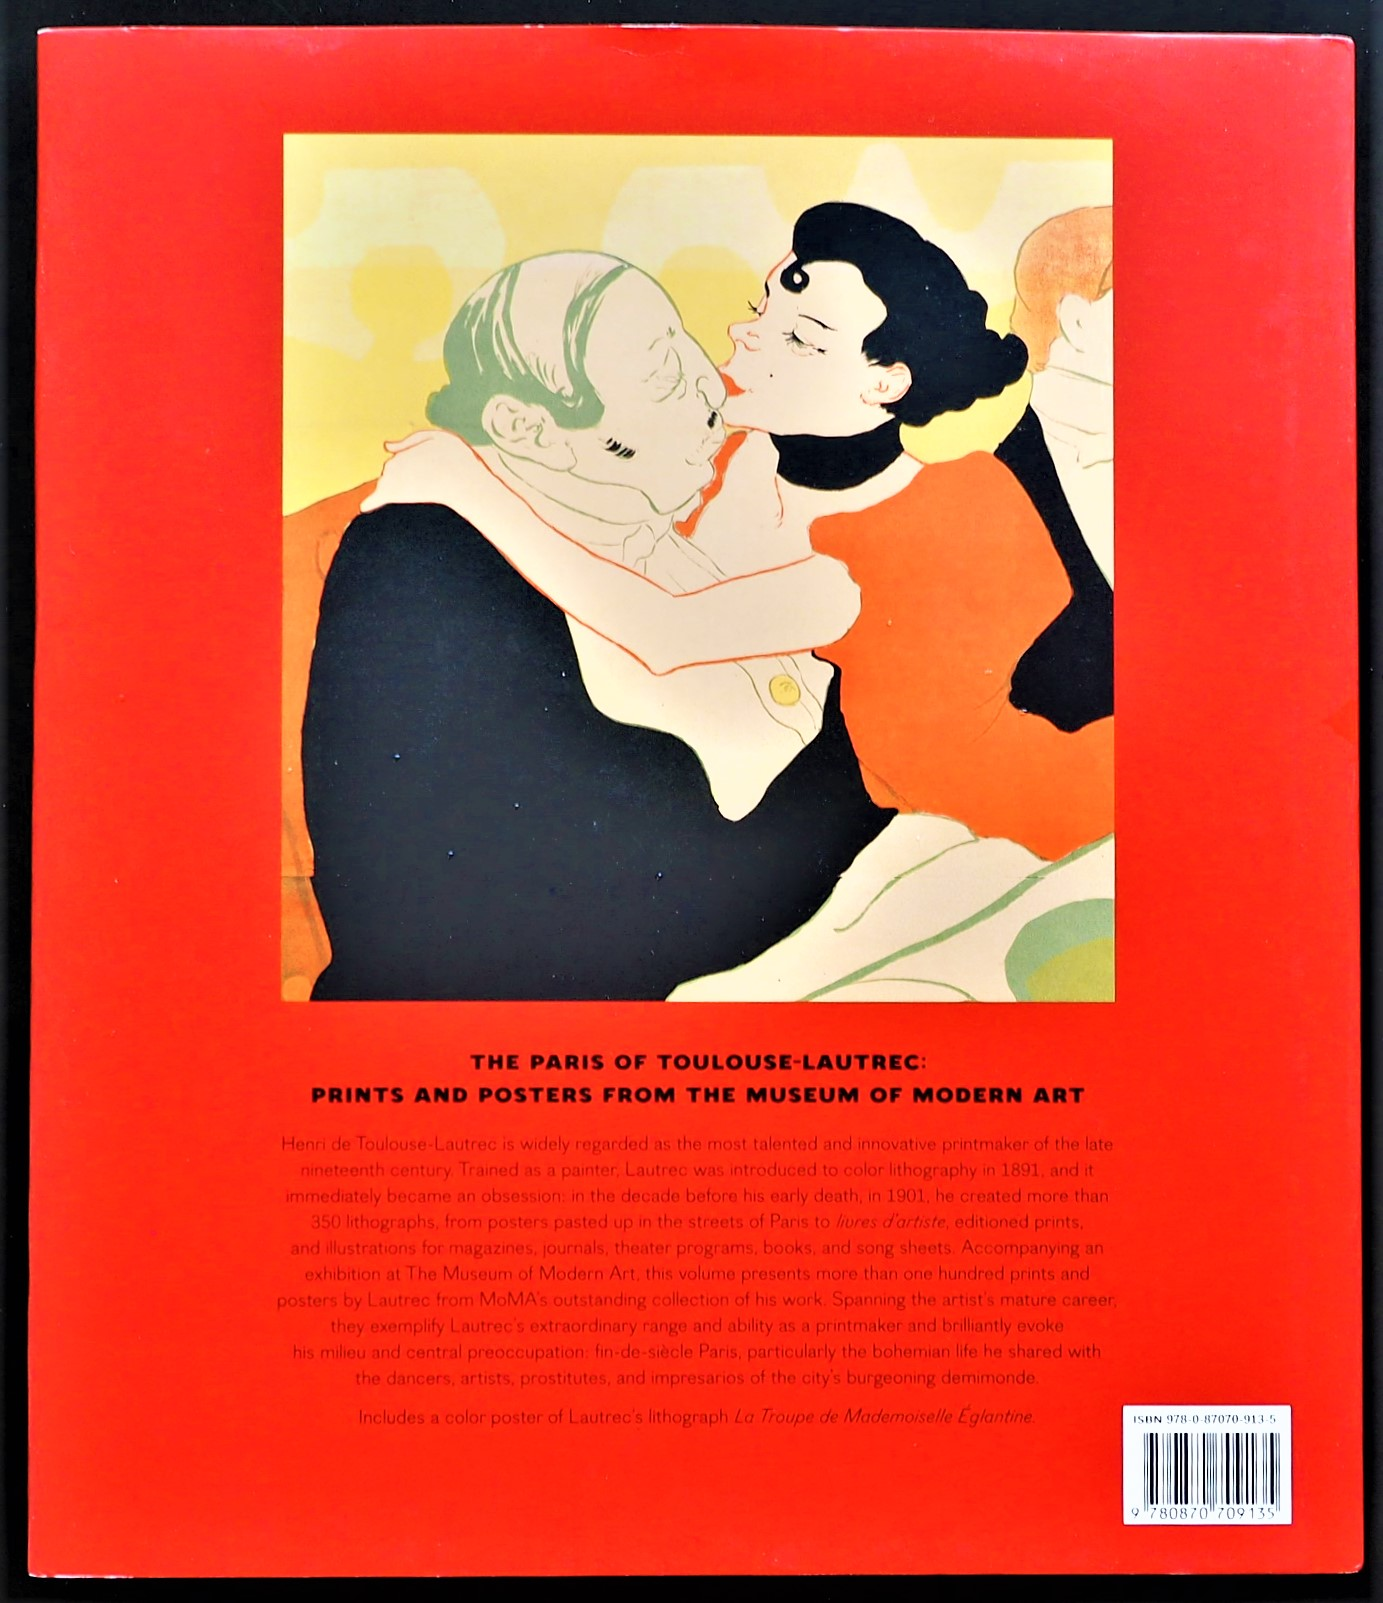 The Paris Of Toulouse Lautrec Prints And Posters From The